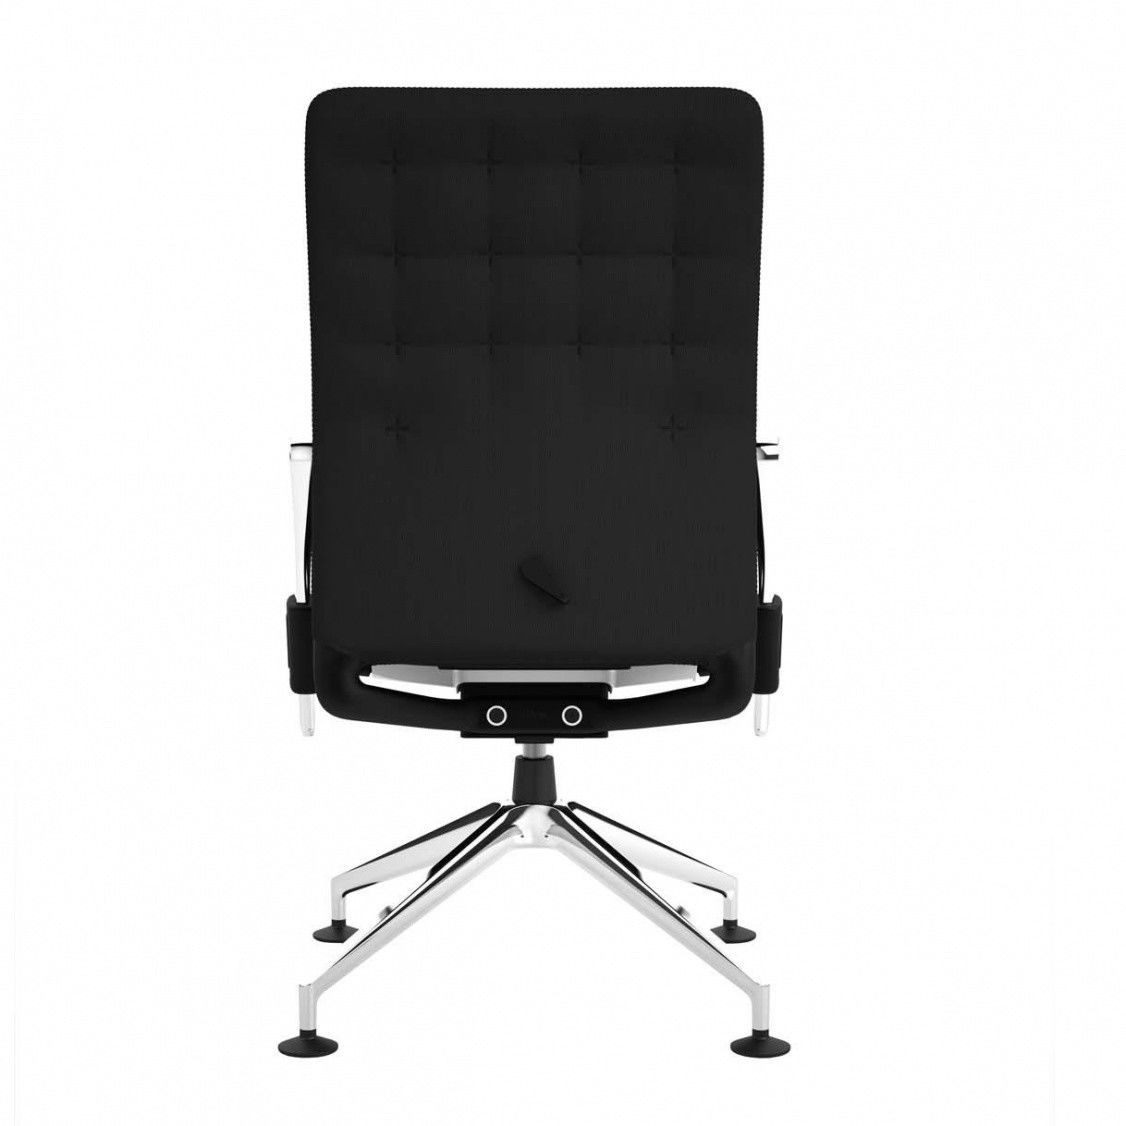 id trim citterio office conference chair vitra. Black Bedroom Furniture Sets. Home Design Ideas